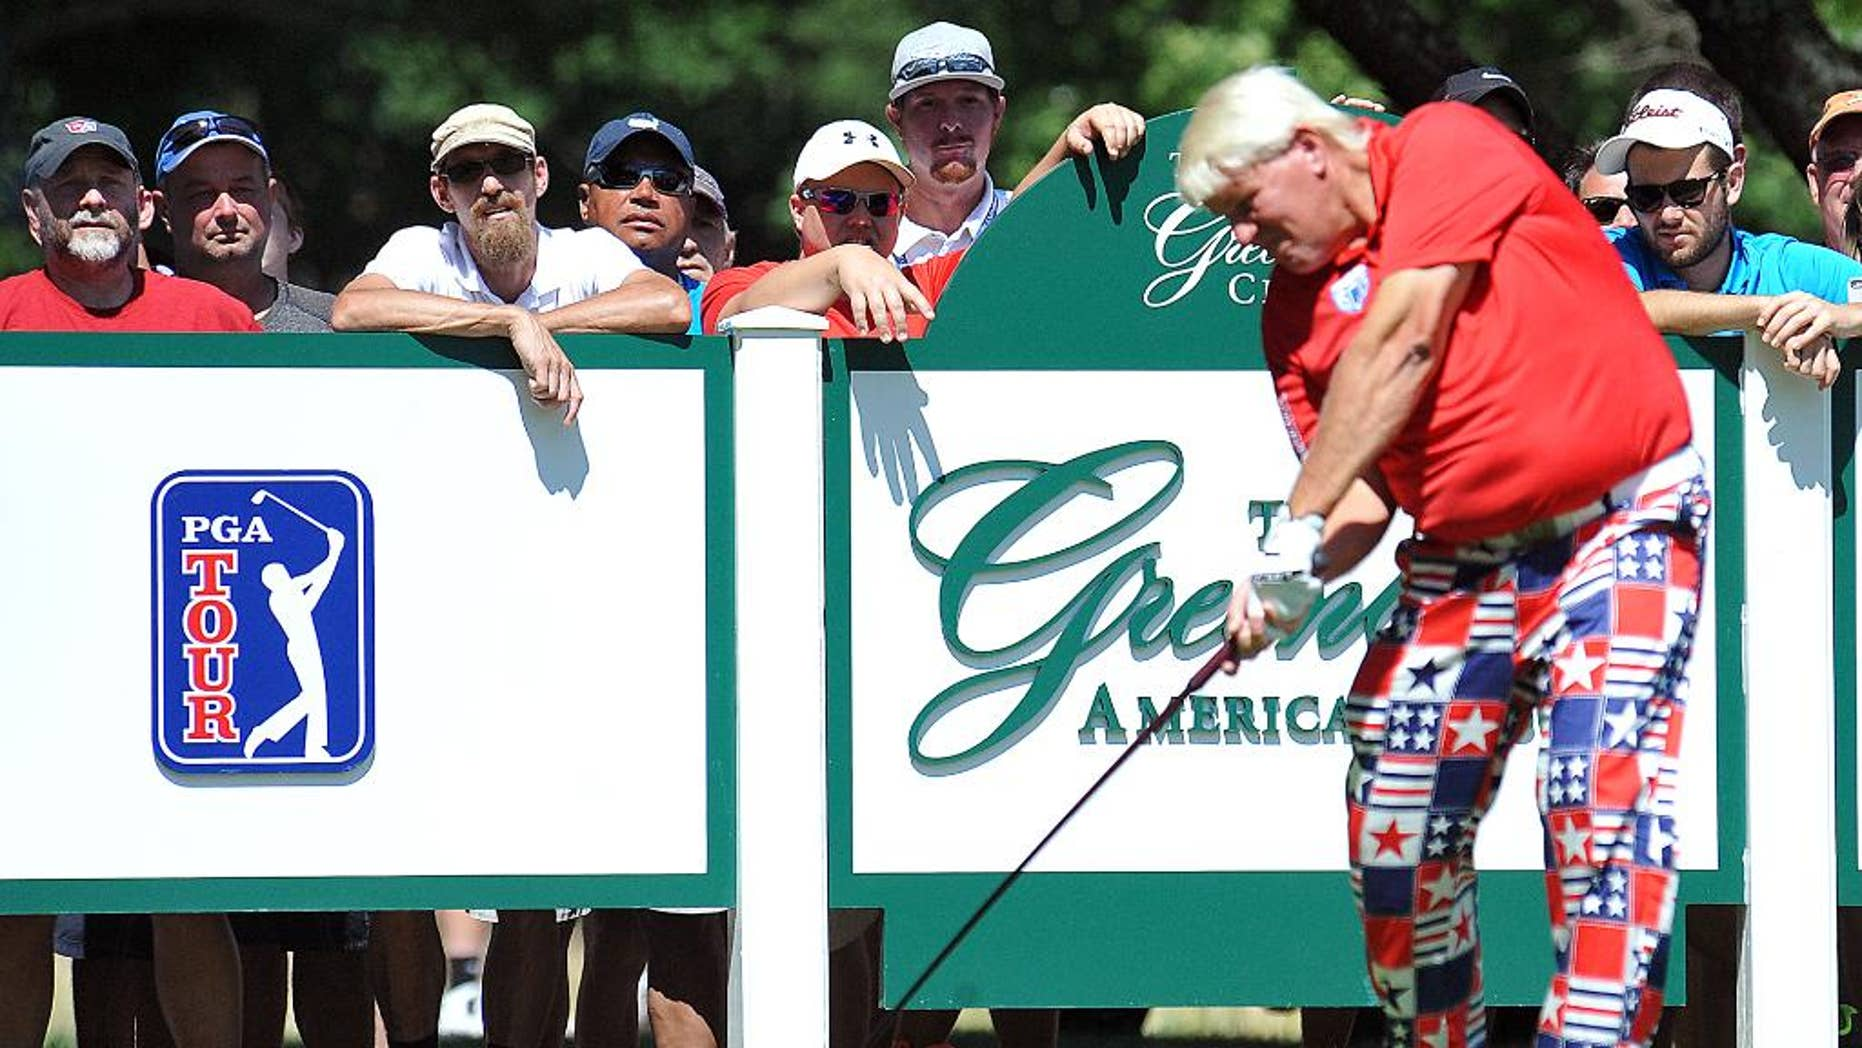 John Daly tees off on the eighth hole during the second round of the Greenbrier Classic golf tournament at the Greenbrier Resort in White Sulphur Springs, W.Va., Friday, July 4, 2014. (AP Photo/Chris Tilley)